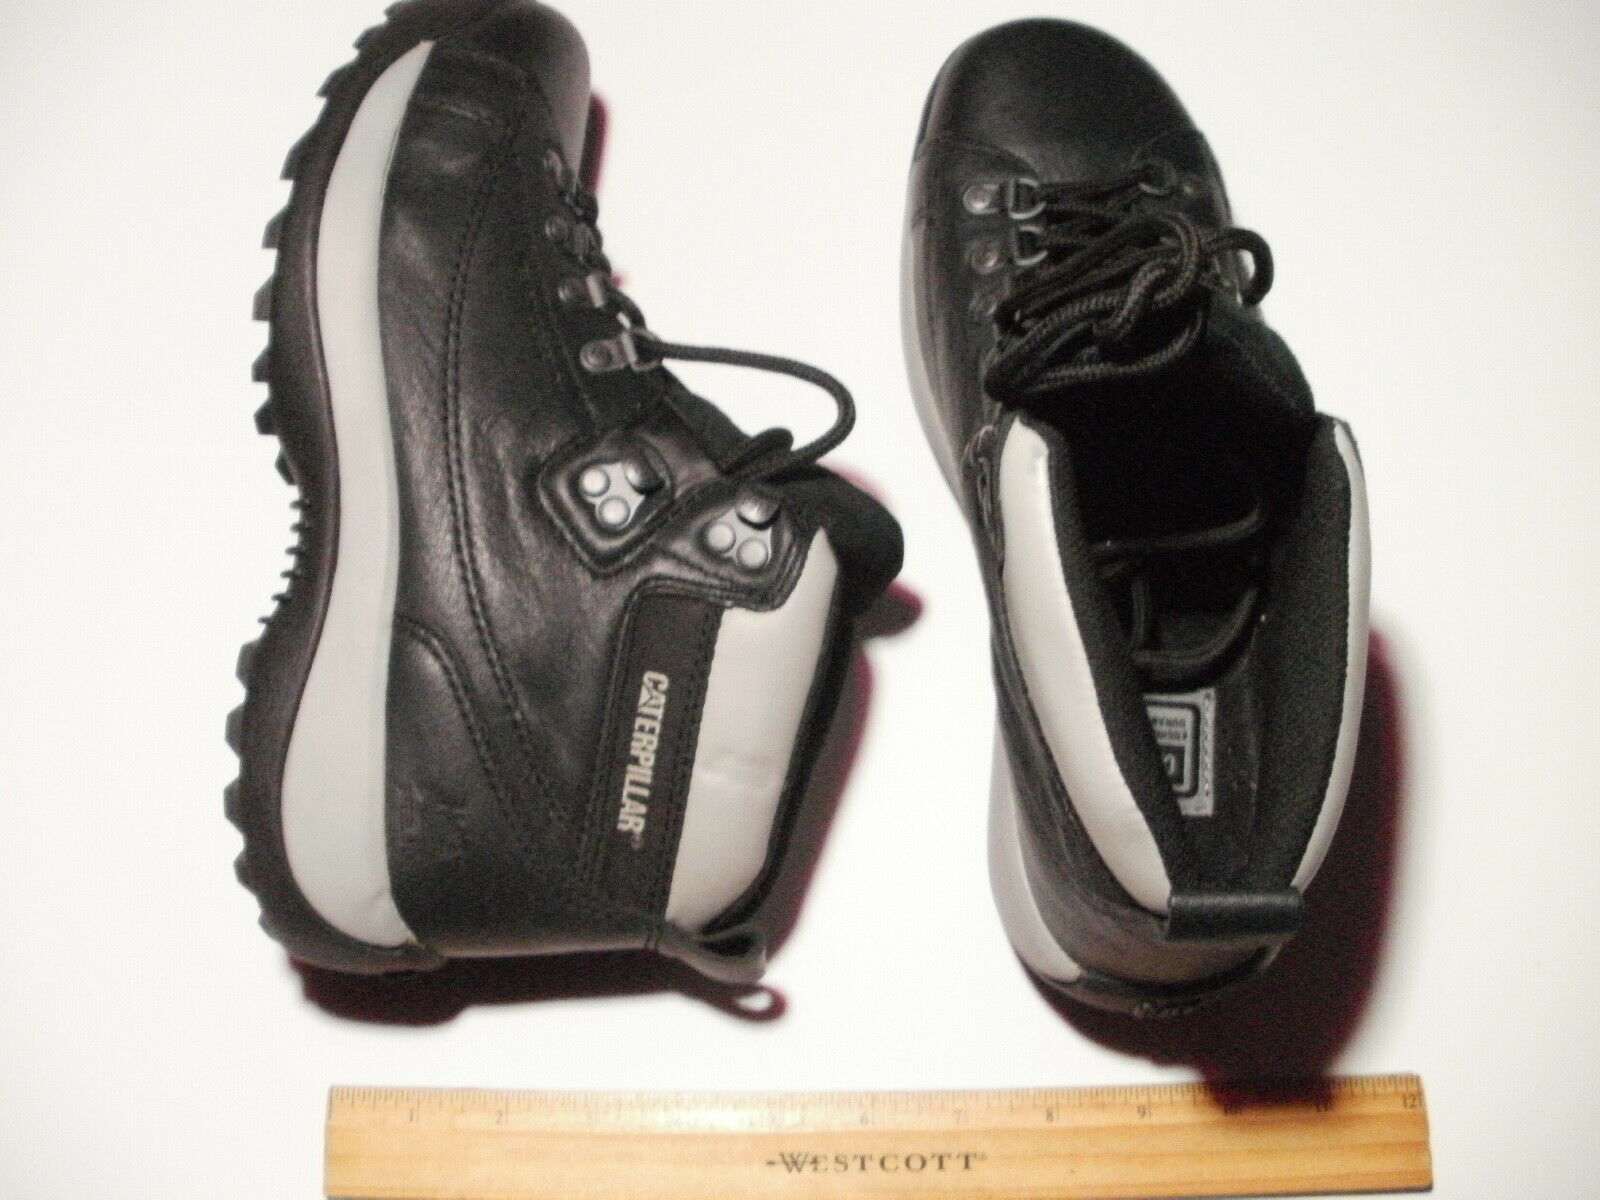 New Caterpillar Hiking Boots- Size 9